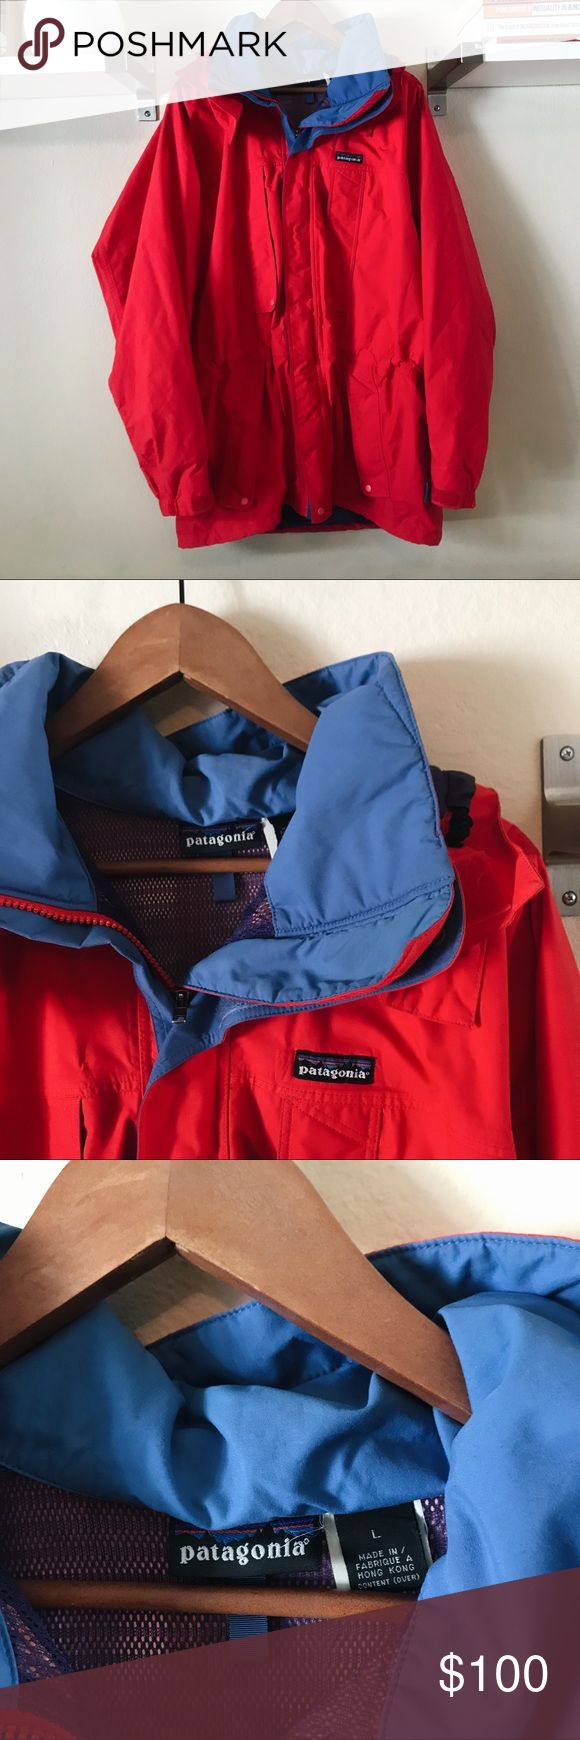 Patagonia Ski Jacket Super awesome retro Patagonia ski jacket. Men's Large. There are multiple pockets on the front and on the inside. Super heavy, warm, and waterproof! This is in 9/10 condition, there are just some very tiny marks from being used (see last photo). Otherwise no flaws/rips/holes. MEASUREMENTS: 🌸 Length: 33in 🌸 Armpit to armpit: 27in. NO TRADES. Feel free to ask questions! Patagonia Jackets & Coats Utility Jackets